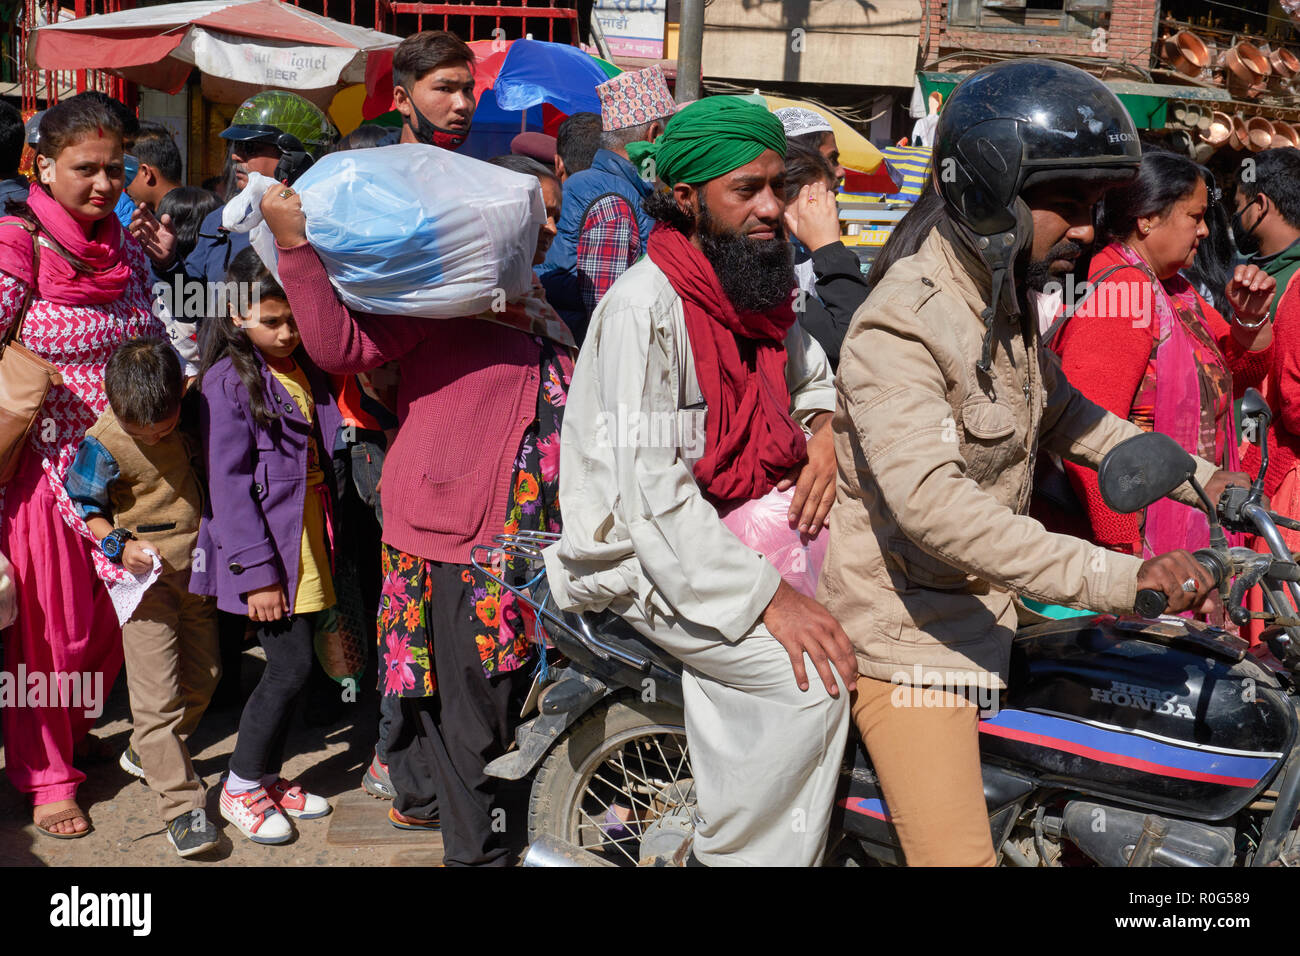 A lane in a market area in Kathmandu, Nepal, is jam-packed with motorcycles and pedestrians, a typical traffic situation for the Nepalese capital - Stock Image